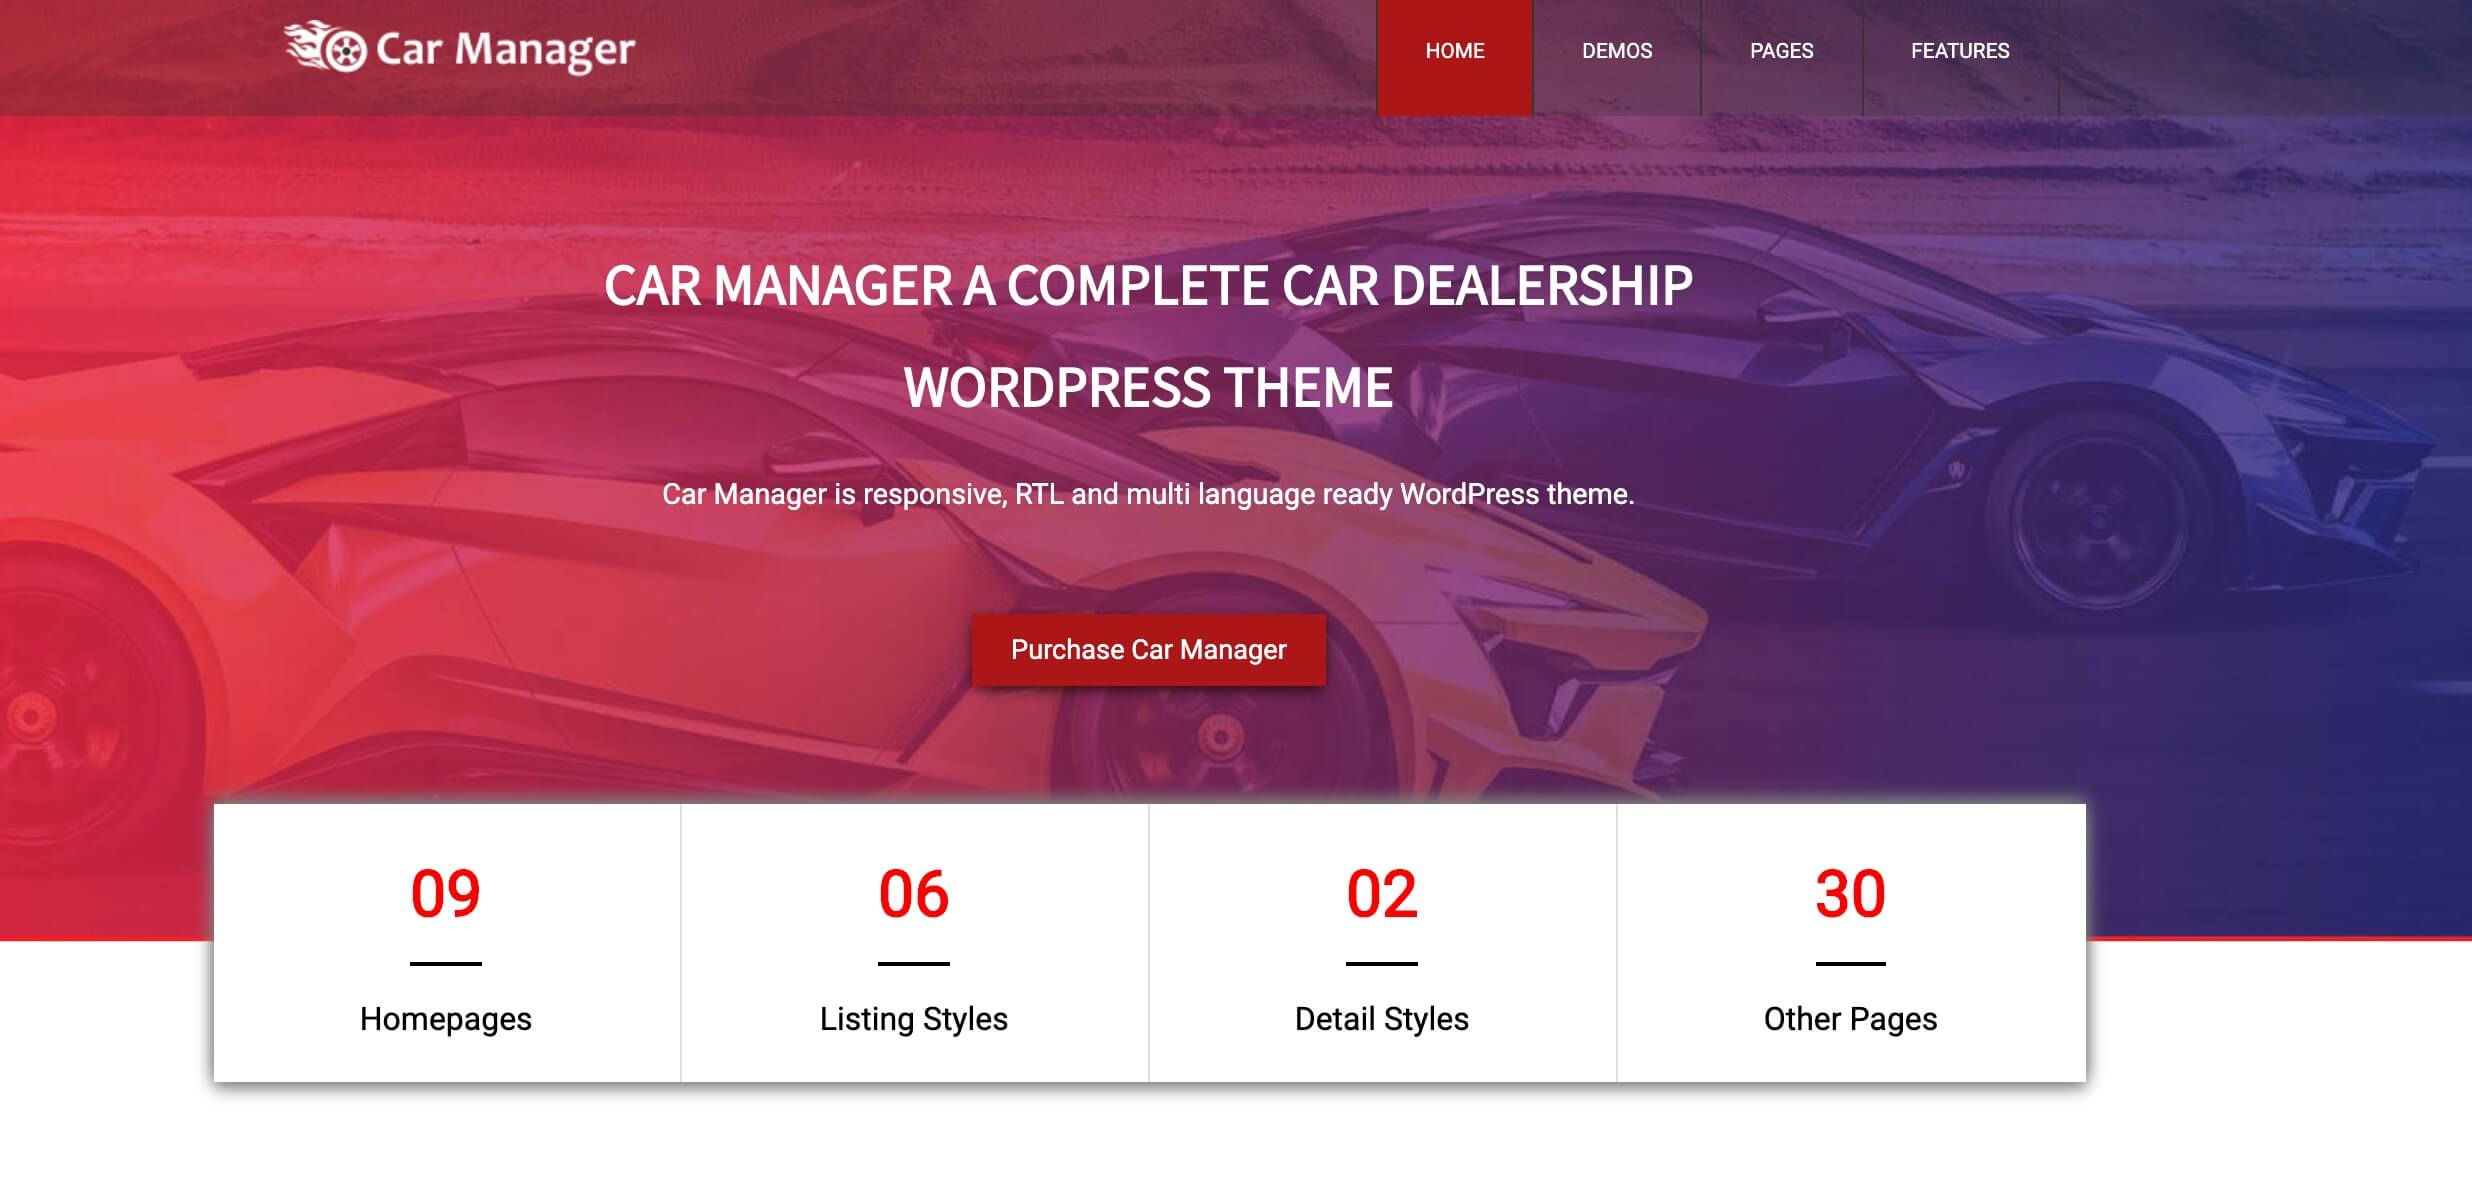 Car Manager - Car Dealership Business wordpress theme cho o to